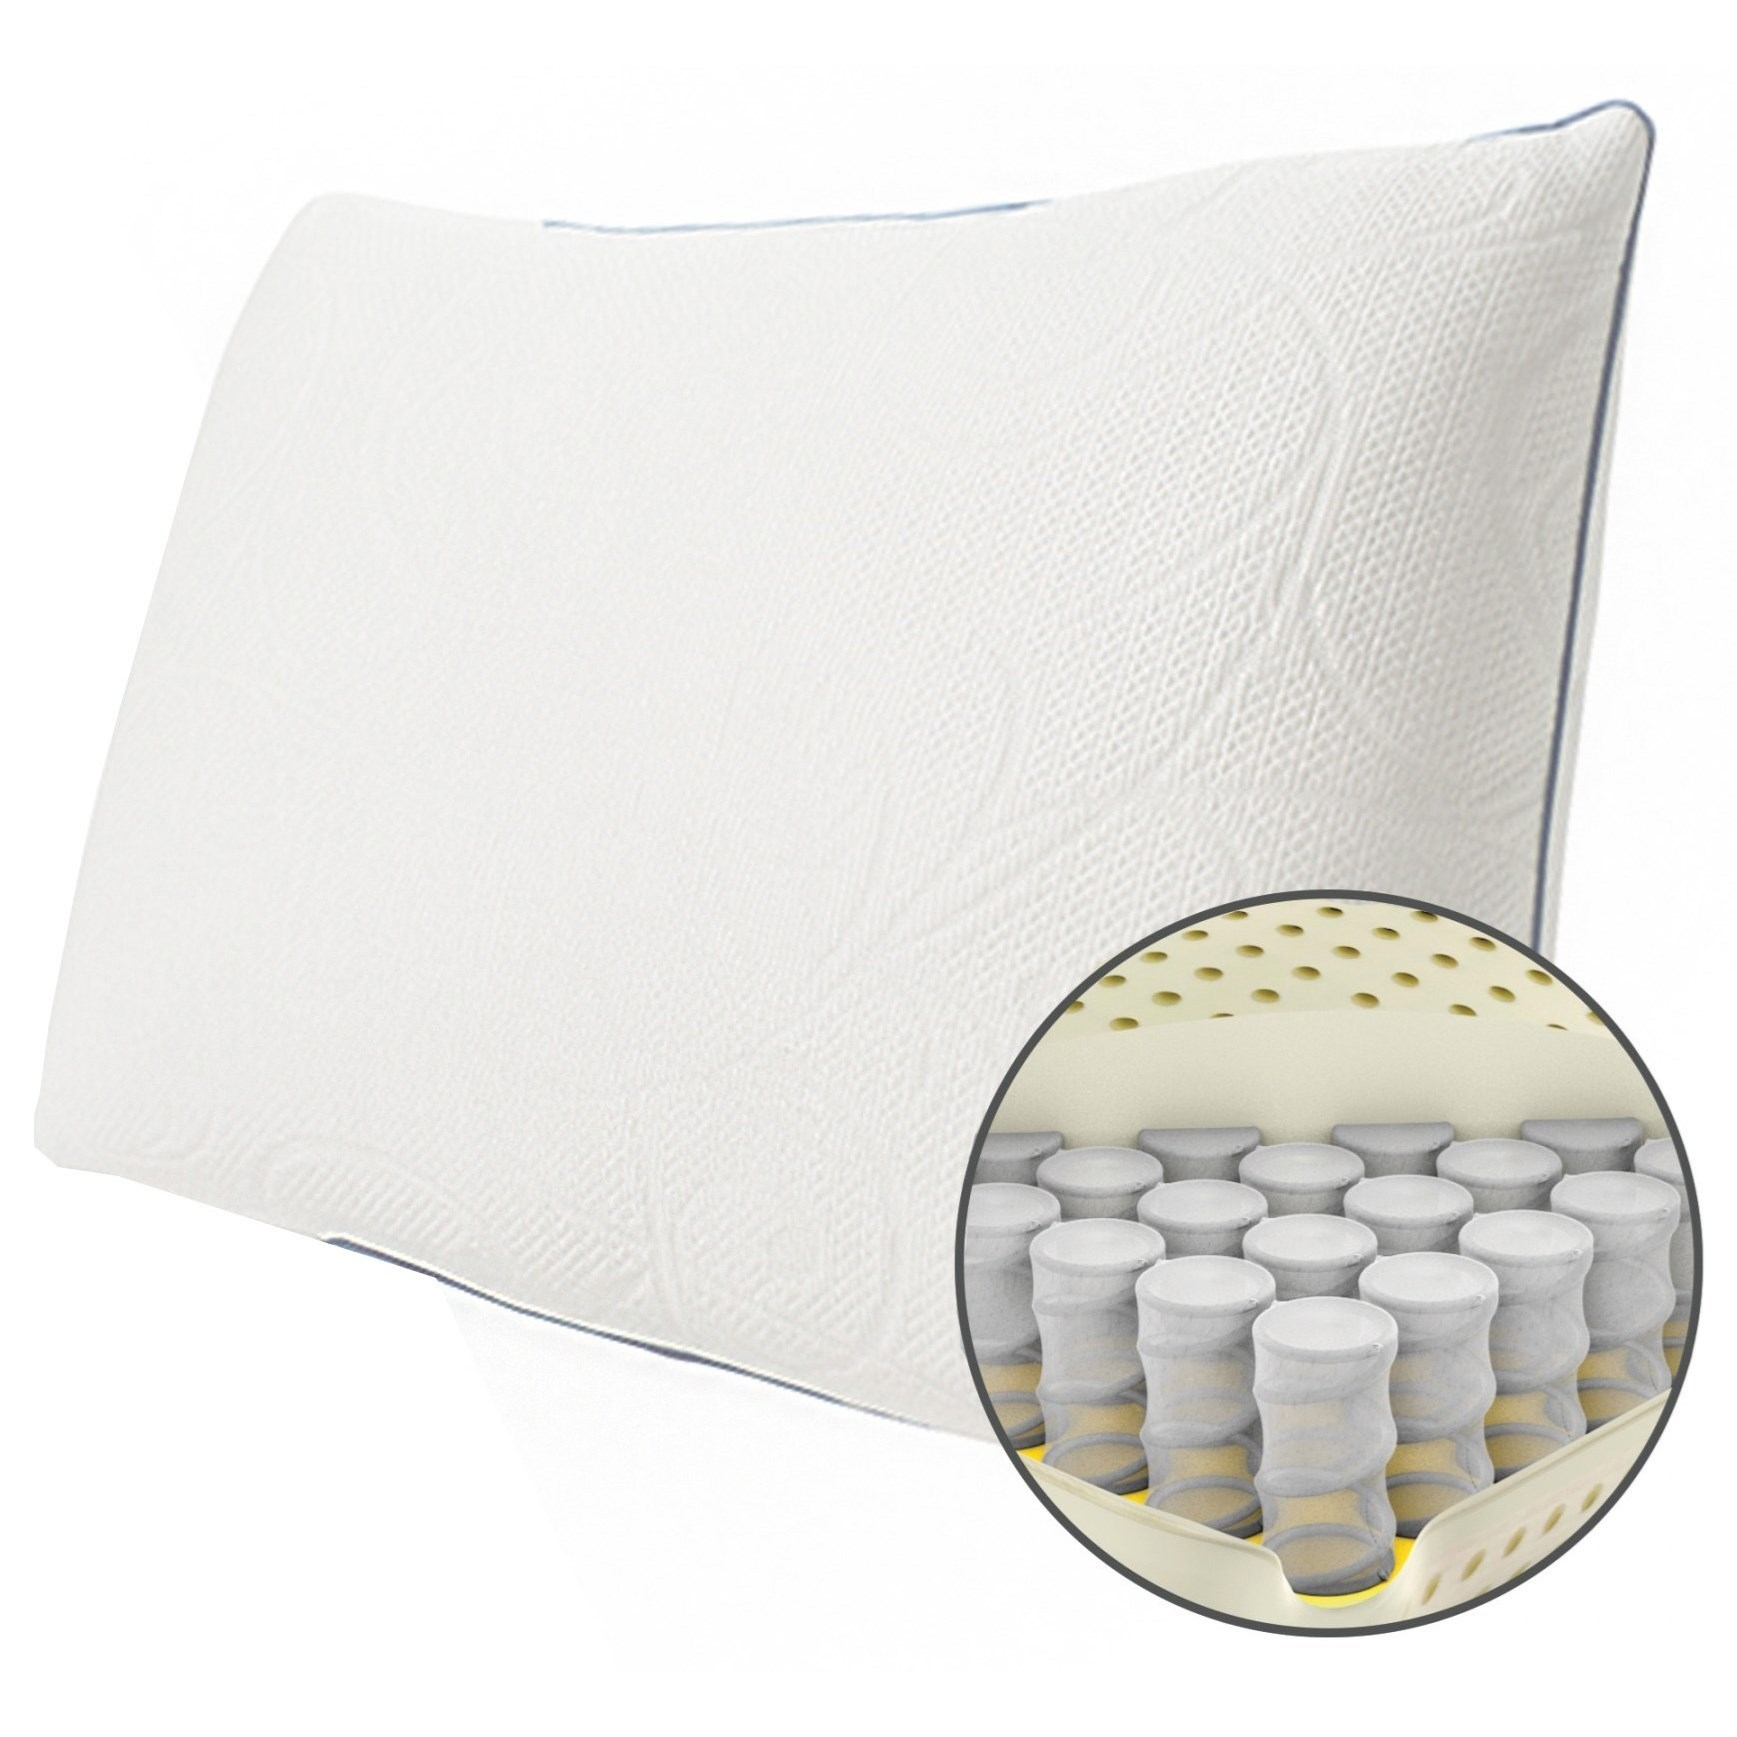 Firm Memory Foam Pillow Protect A Bed Memory Foam Hybrid Crystal Pillow Queen Firm Crystal